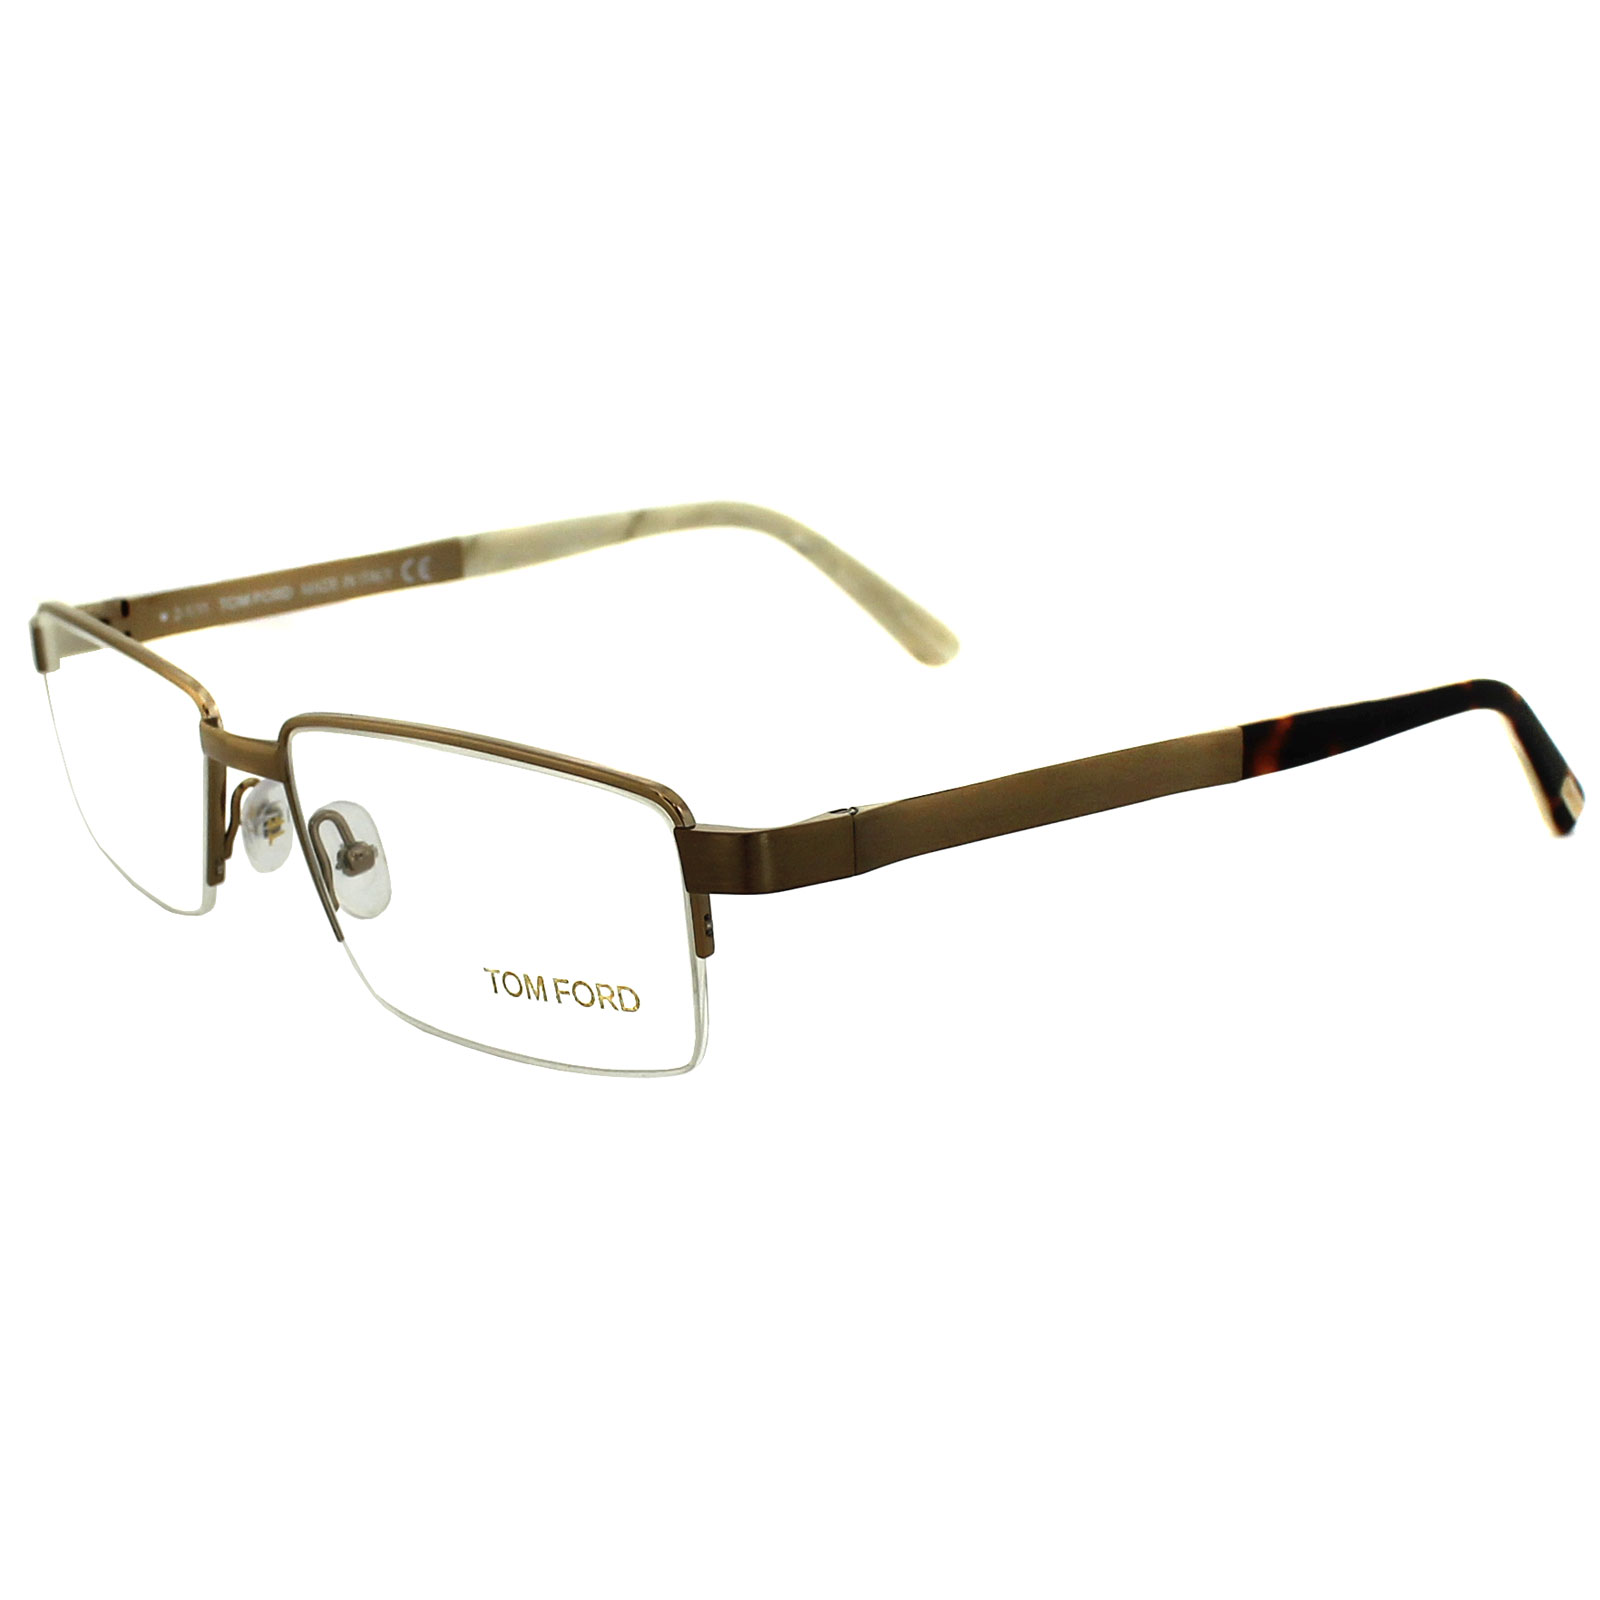 Glasses Frame Tom Ford : Cheap Tom Ford 5204 Glasses Frames - Discounted Sunglasses